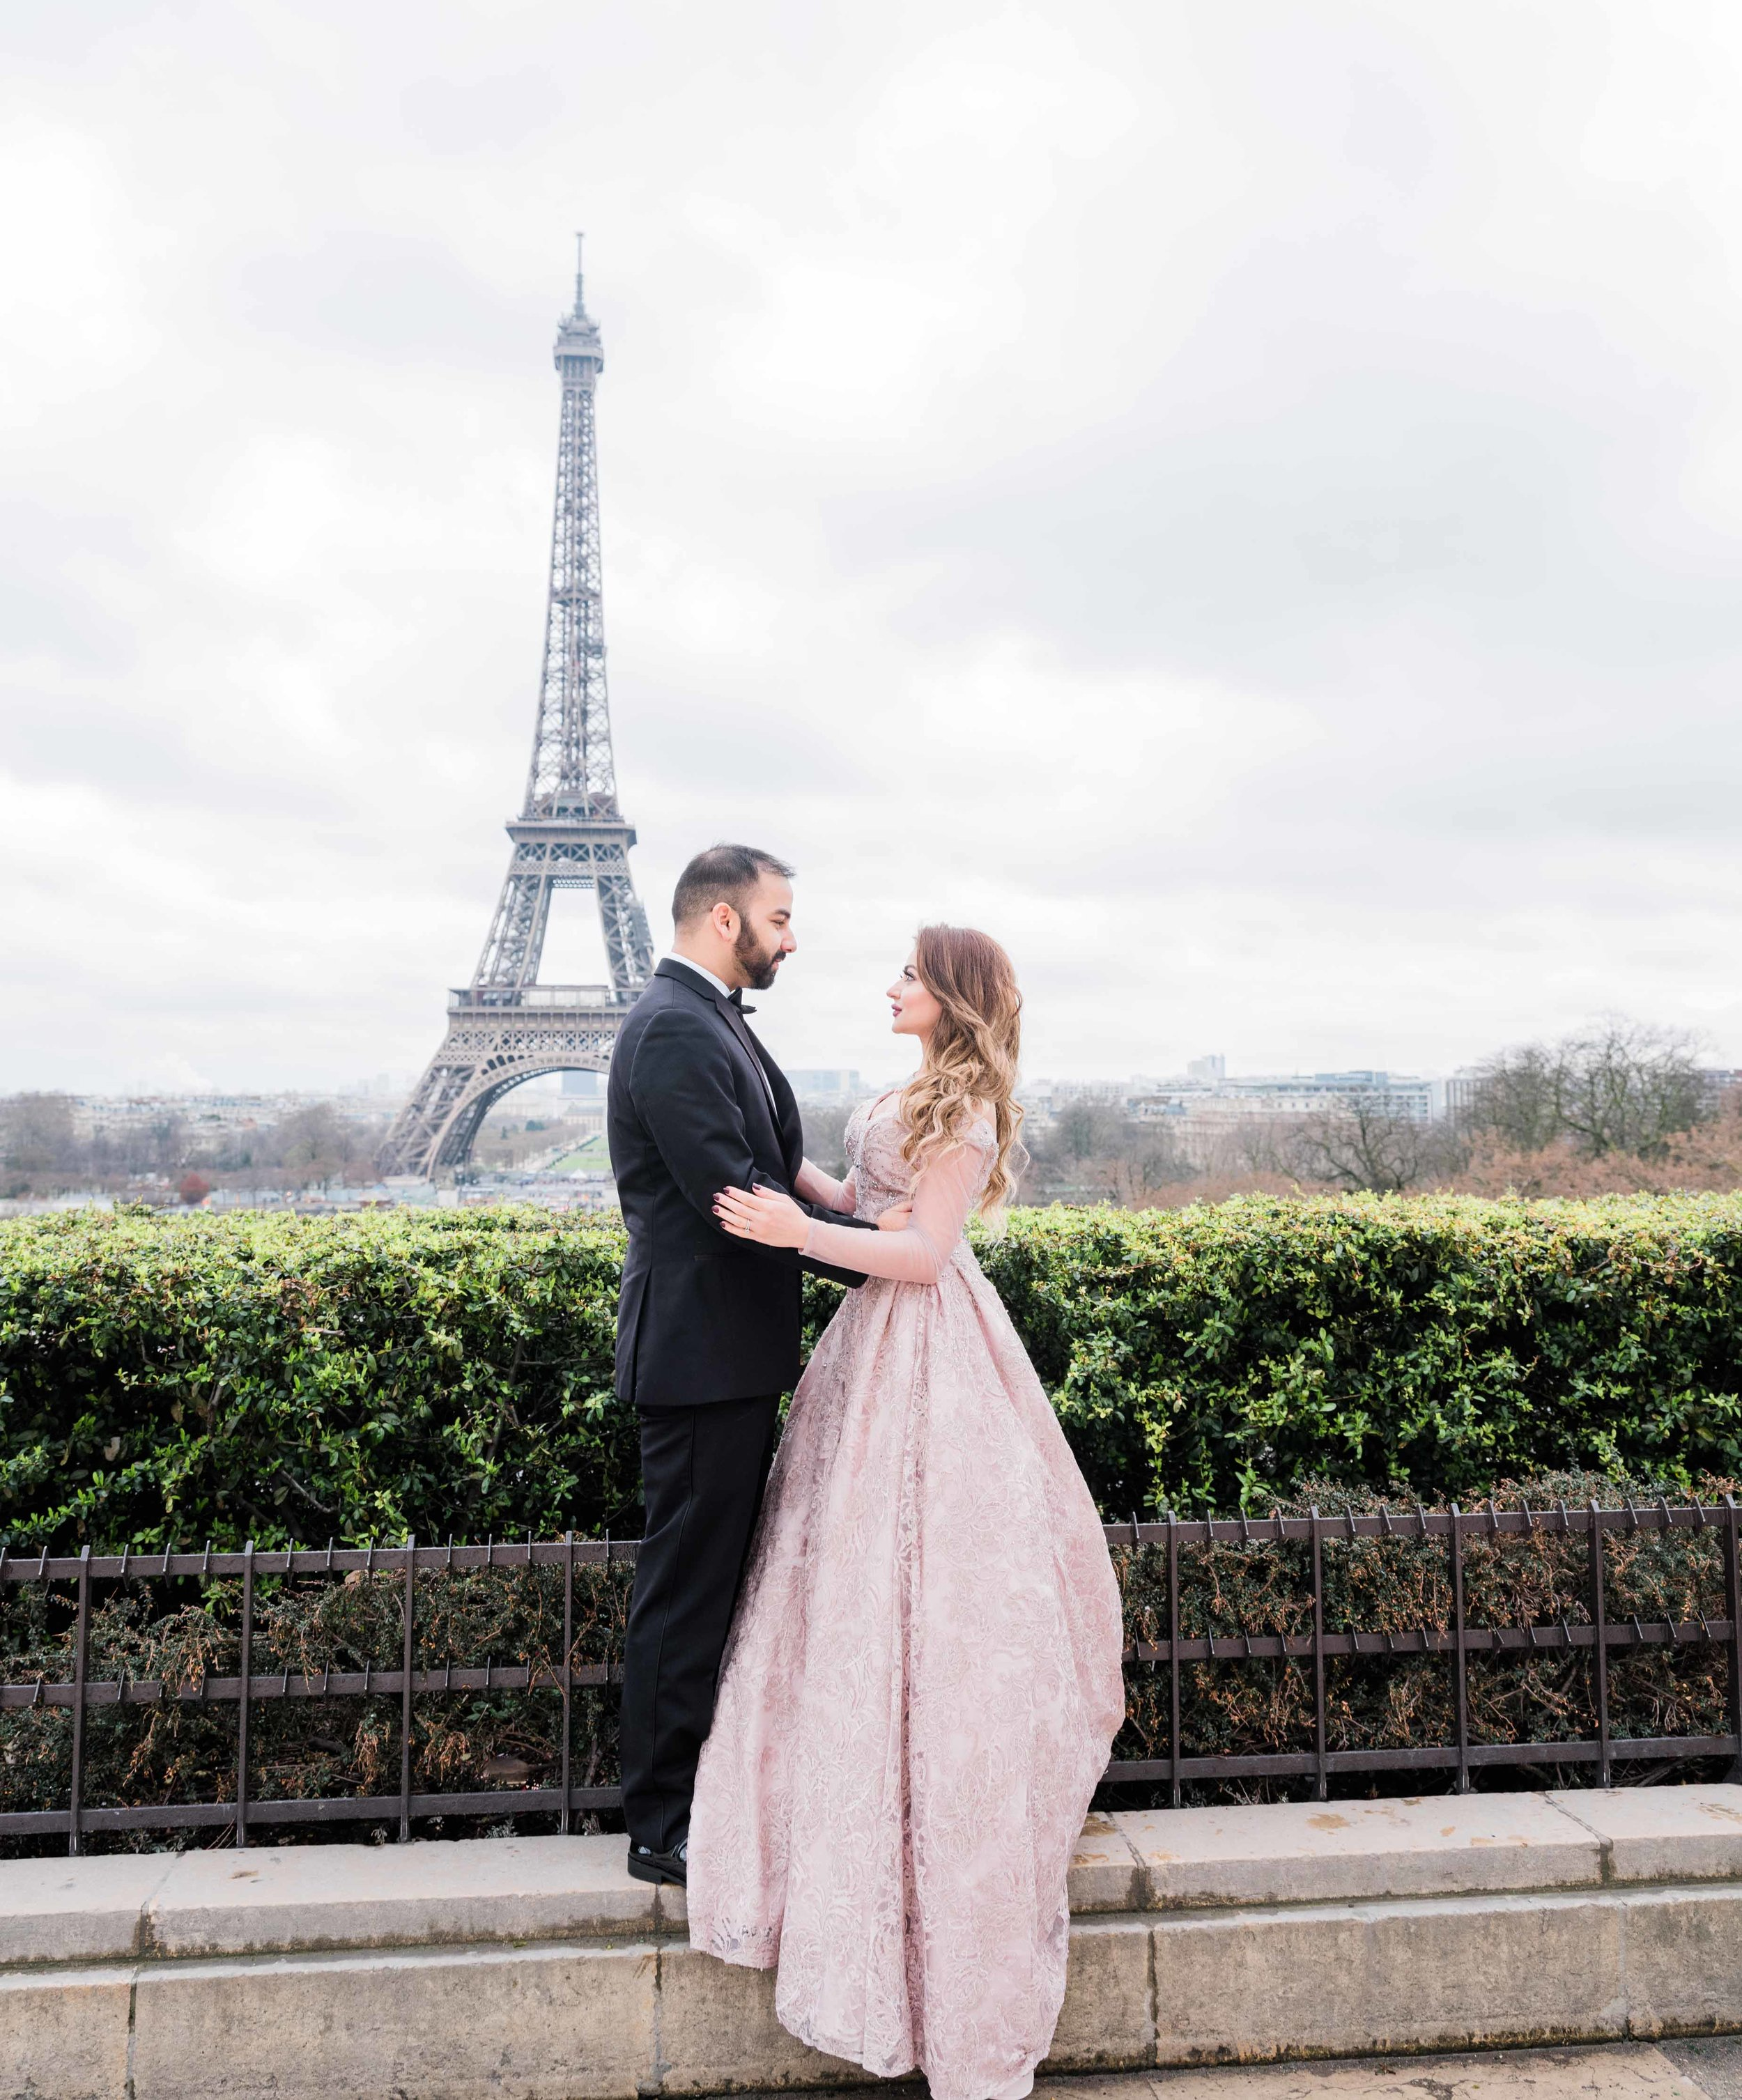 A prince and princess fairy tale dream photo shoot at the Eiffel Tower